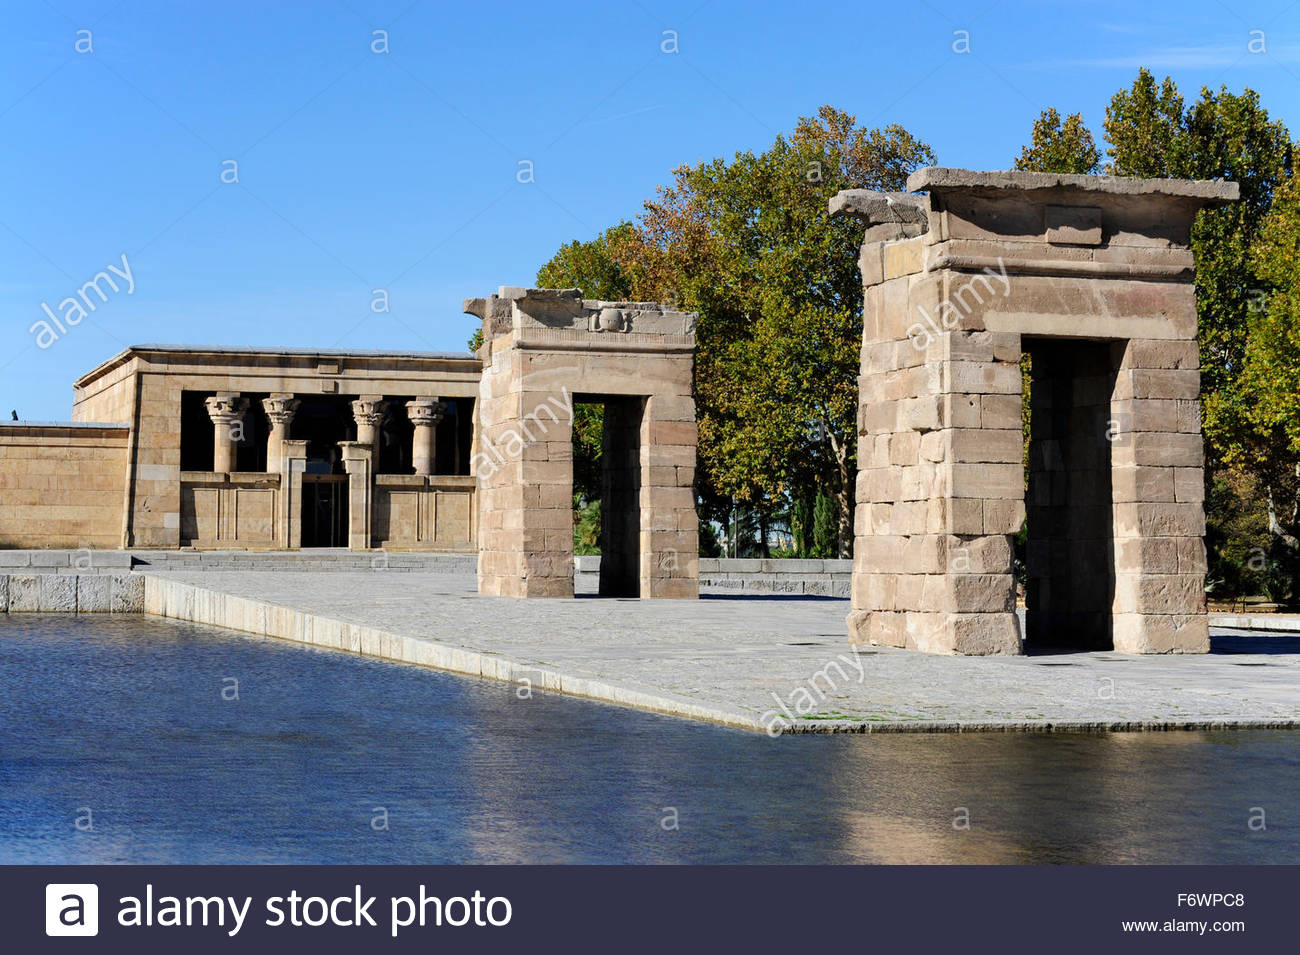 egyptian temple from antiquity templo de debod parque de la montana arguelles madrid spain